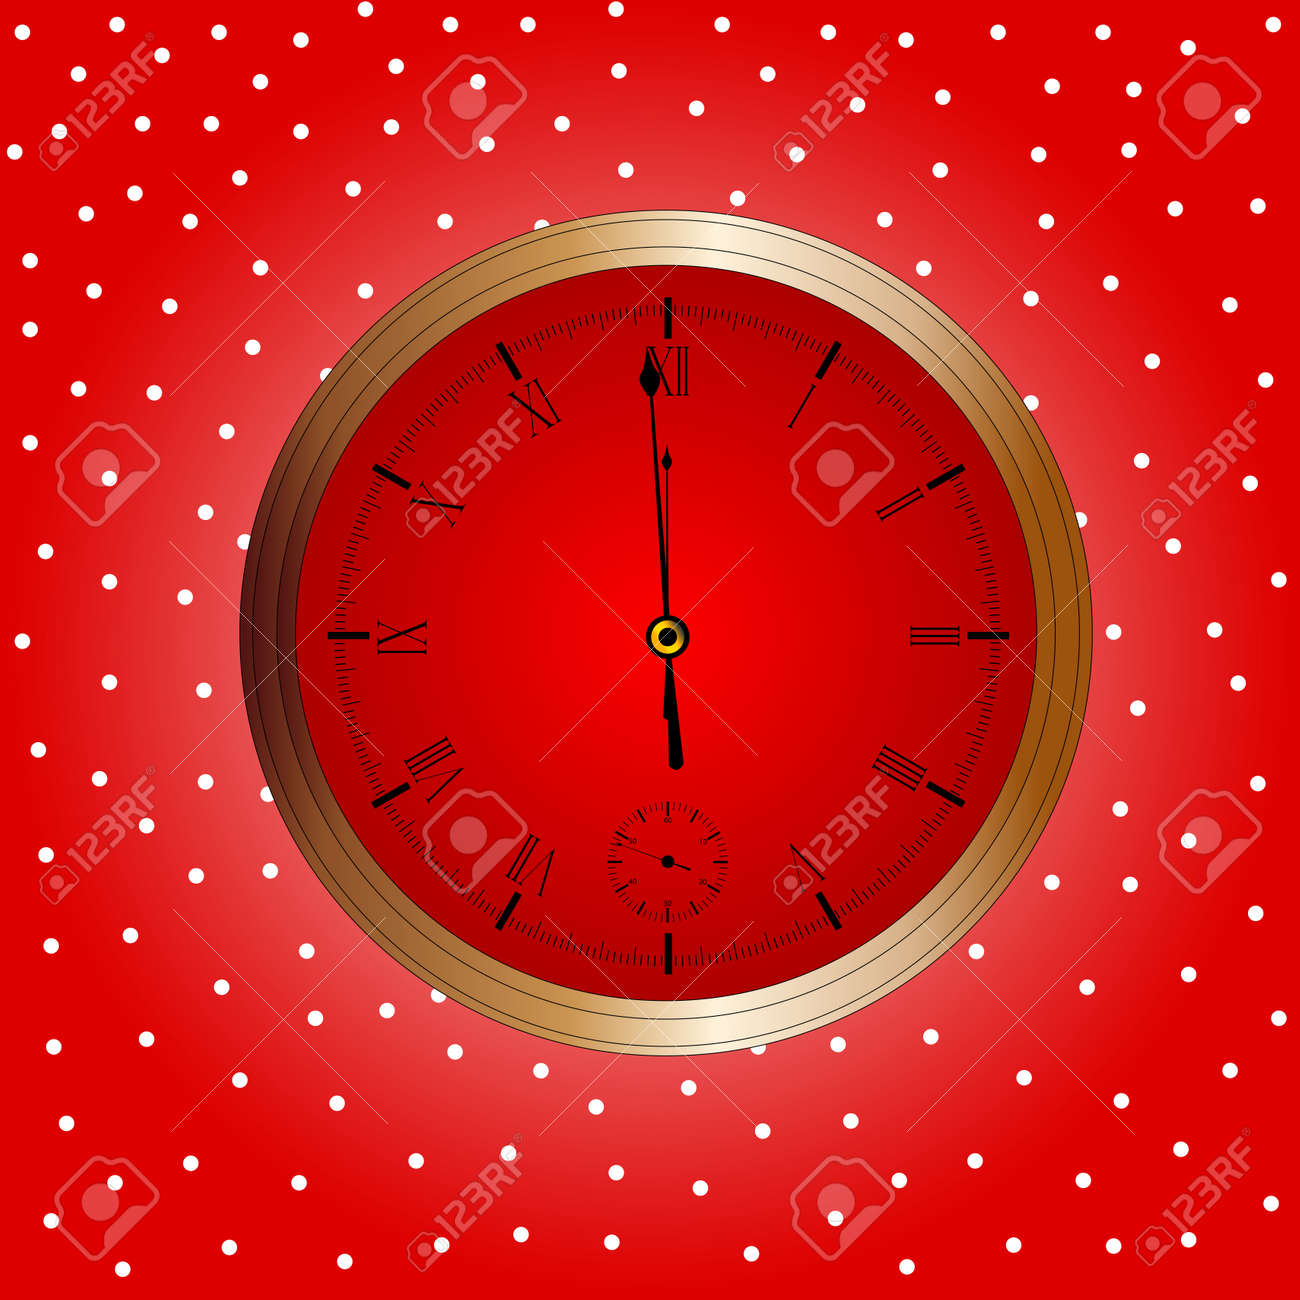 A Christmas and New Year clock showing almost midnight Stock Vector - 24231995